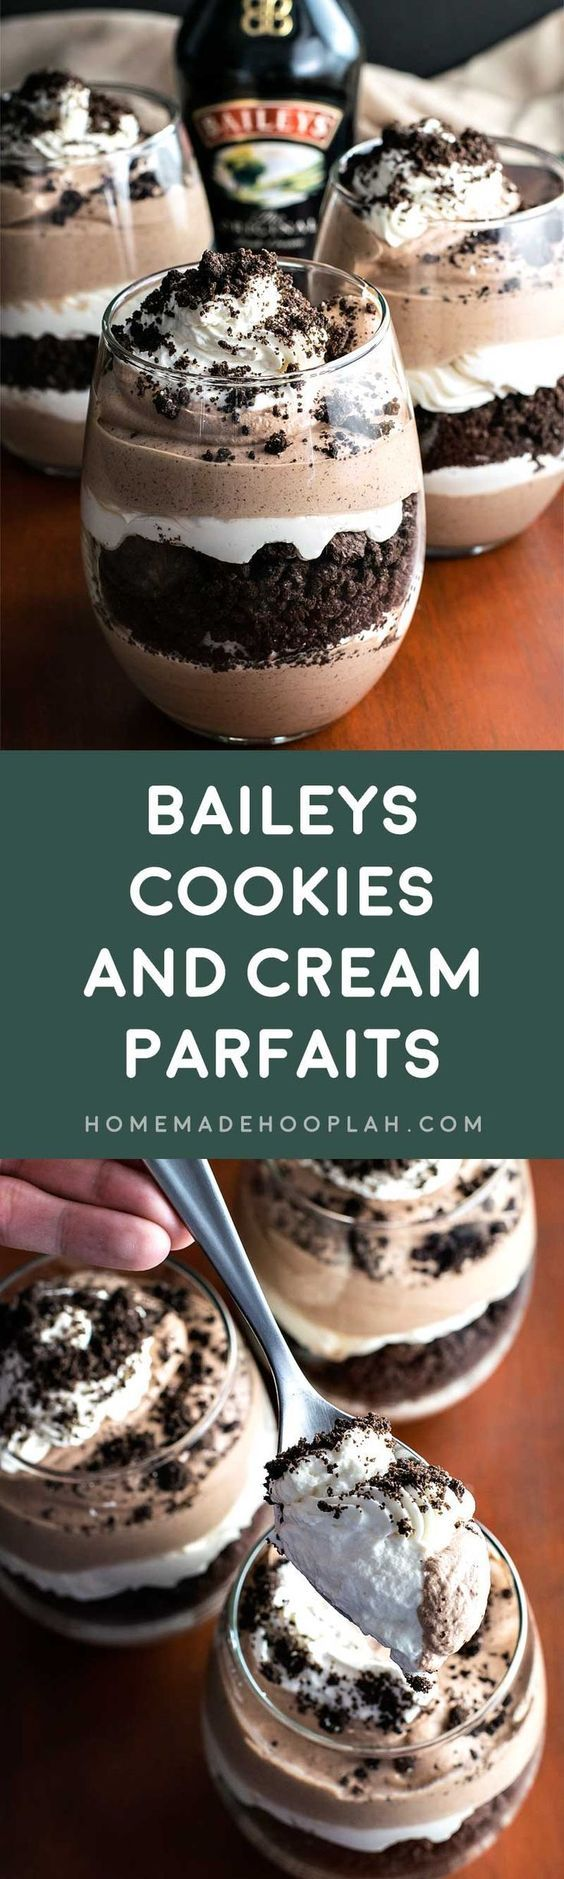 Layered chocolate and Baileys cream paired with crumbled Oreo cookies. These Baileys Cookies and Cream Parfaits are the perfect weekend retreat!